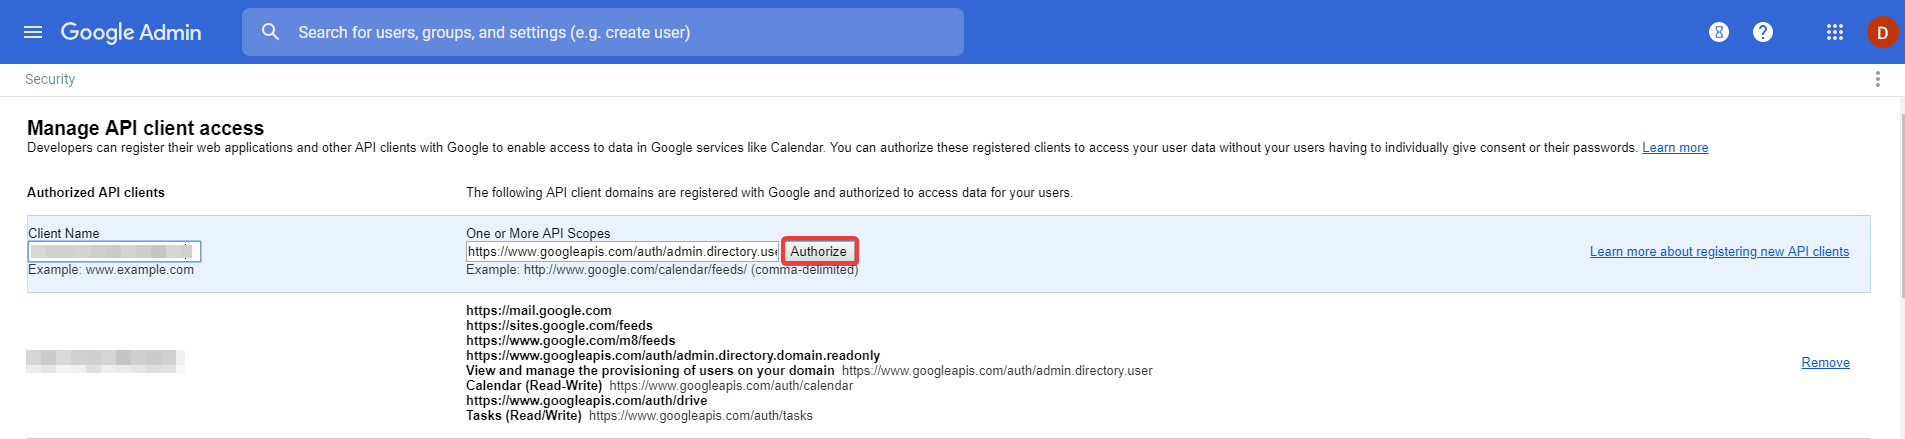 How to obtain authorization from Google for using Active